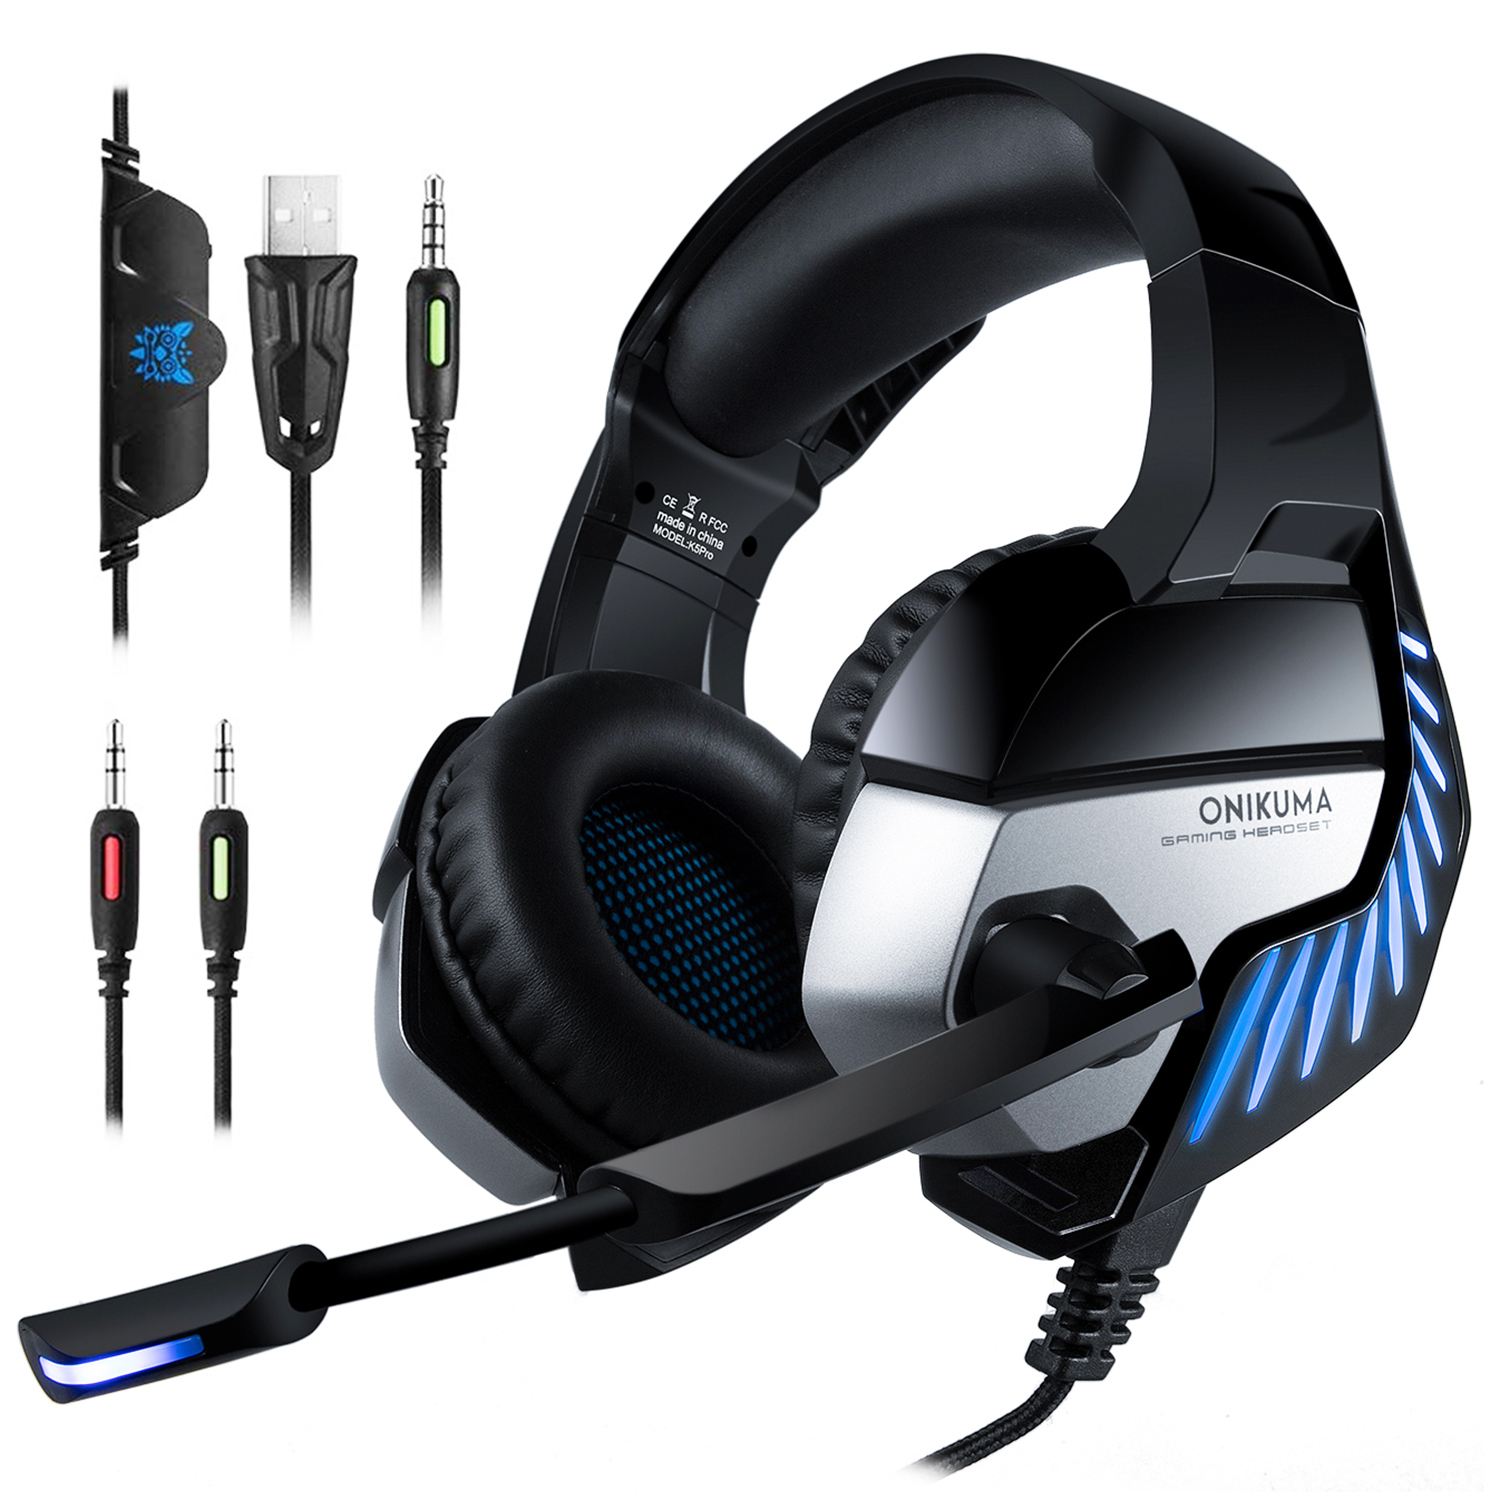 Details about ONIKUMA K5 Pro 3 5mm USB Headphones Bass Surround Gaming  Headset for PS4 Xbox PC